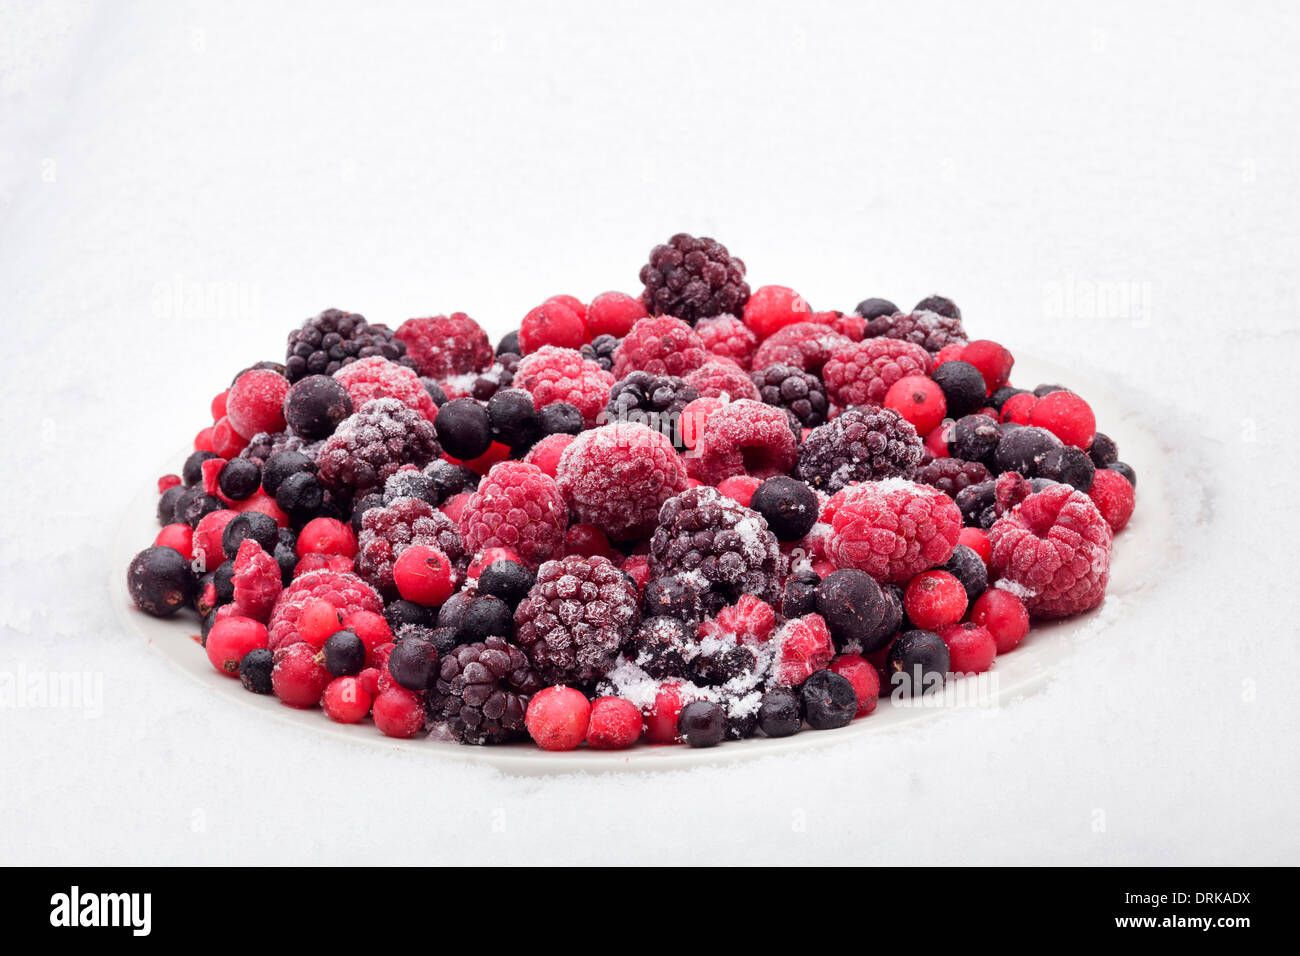 Frozen berries - Stock Image